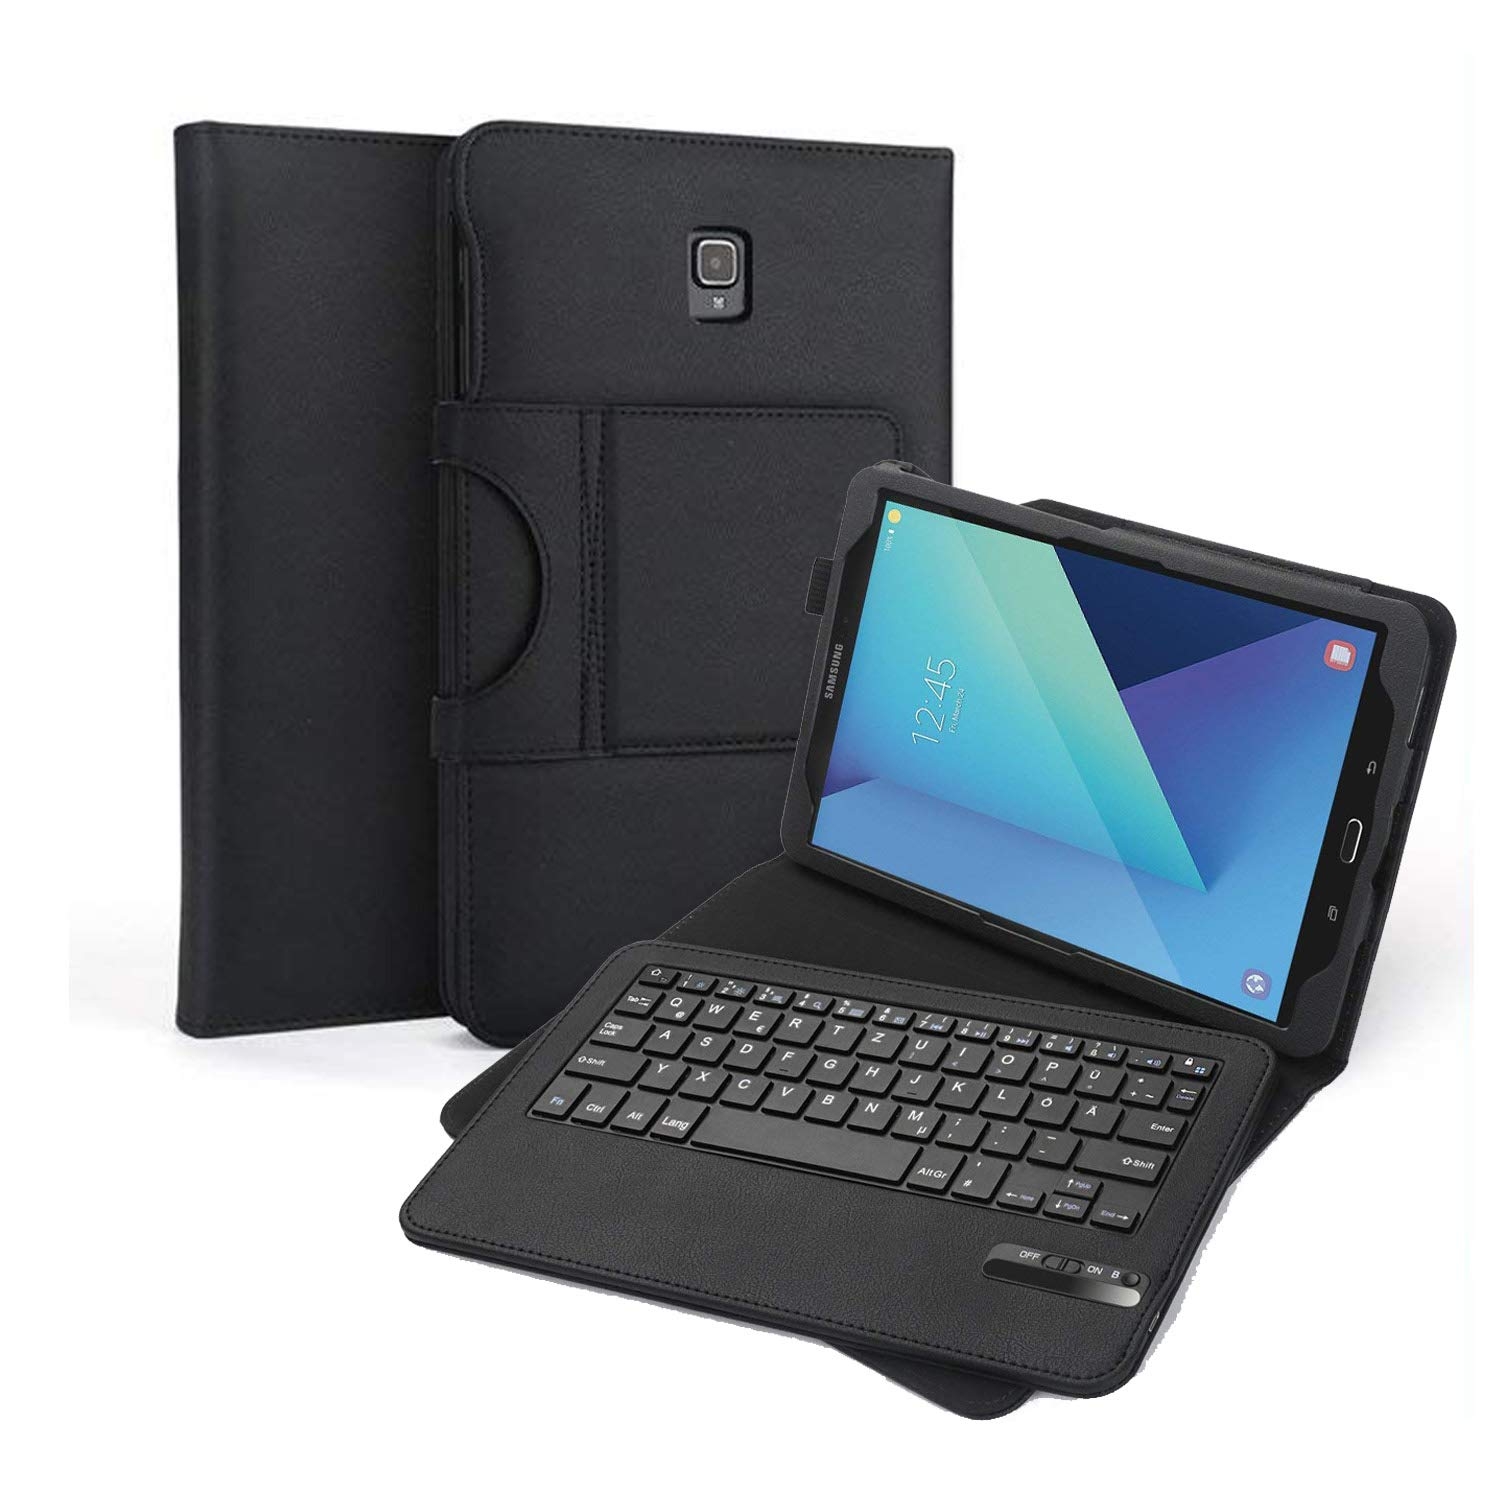 Jelly Comb Bluetooth Tastatur mit Hülle für Samsung Galaxy Tab S3 9.7 Zoll, Kabellose Abnehmbare Tablet Tastatur Hülle für Samsung T820 / T825 26,43cm (9,7 Zoll)